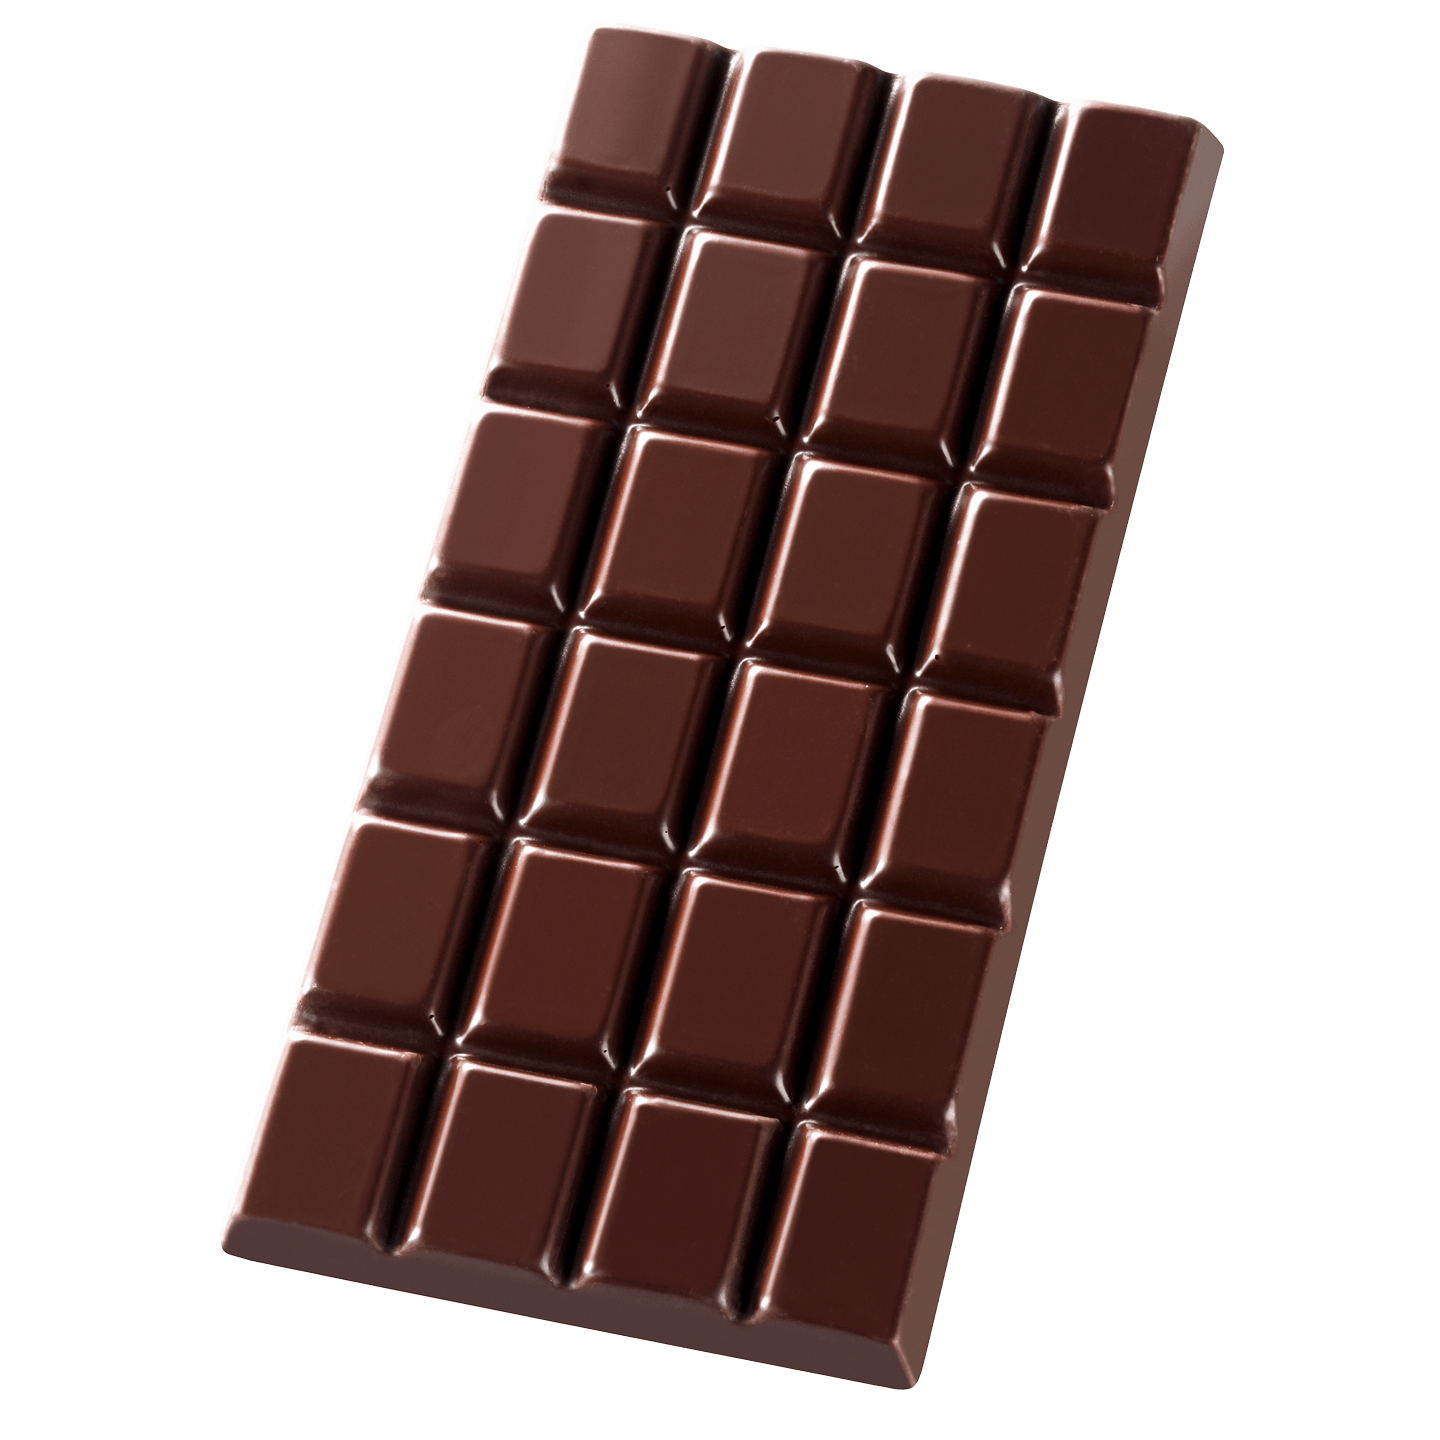 tablette-de-chocolat - Photo